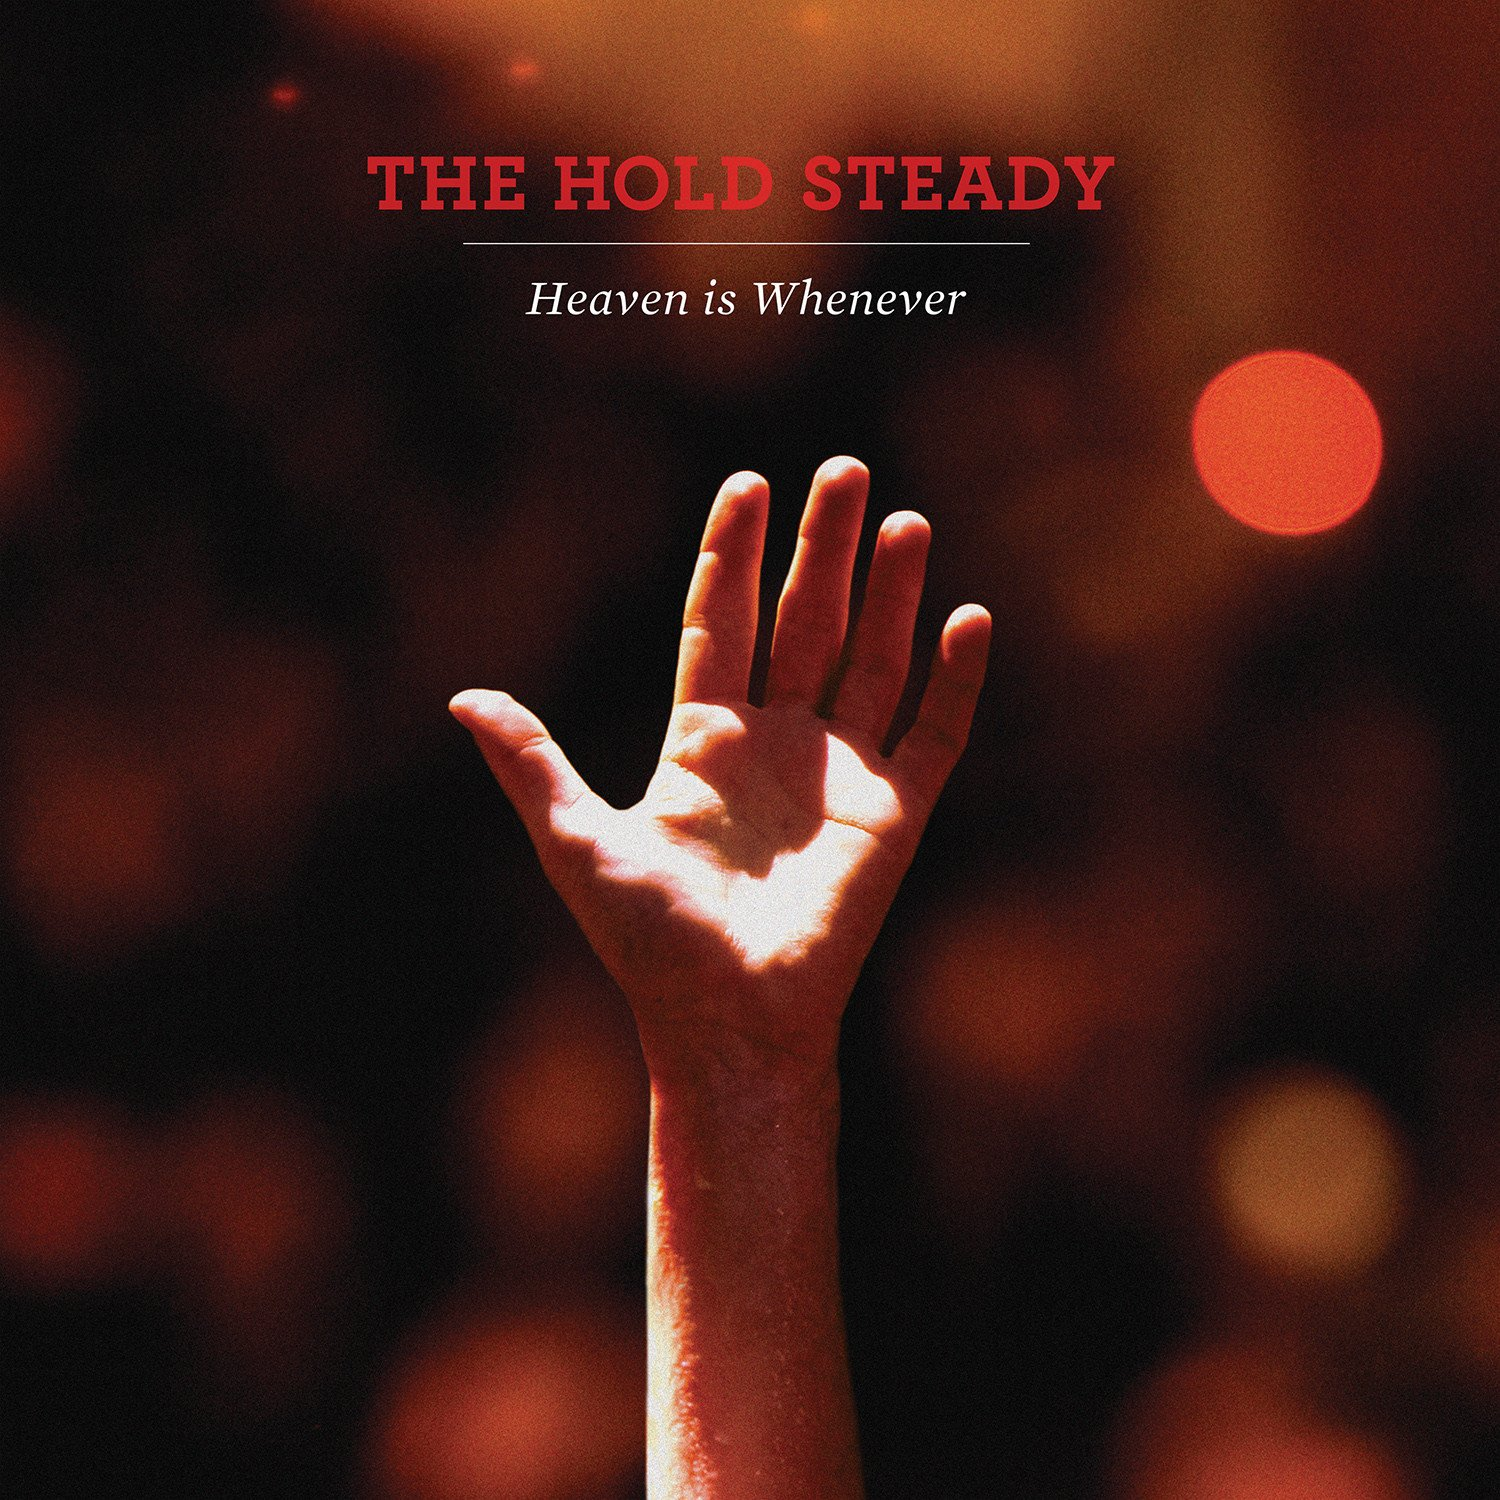 The Hold Steady, Heaven Is Whenever, Vagrant.jpg